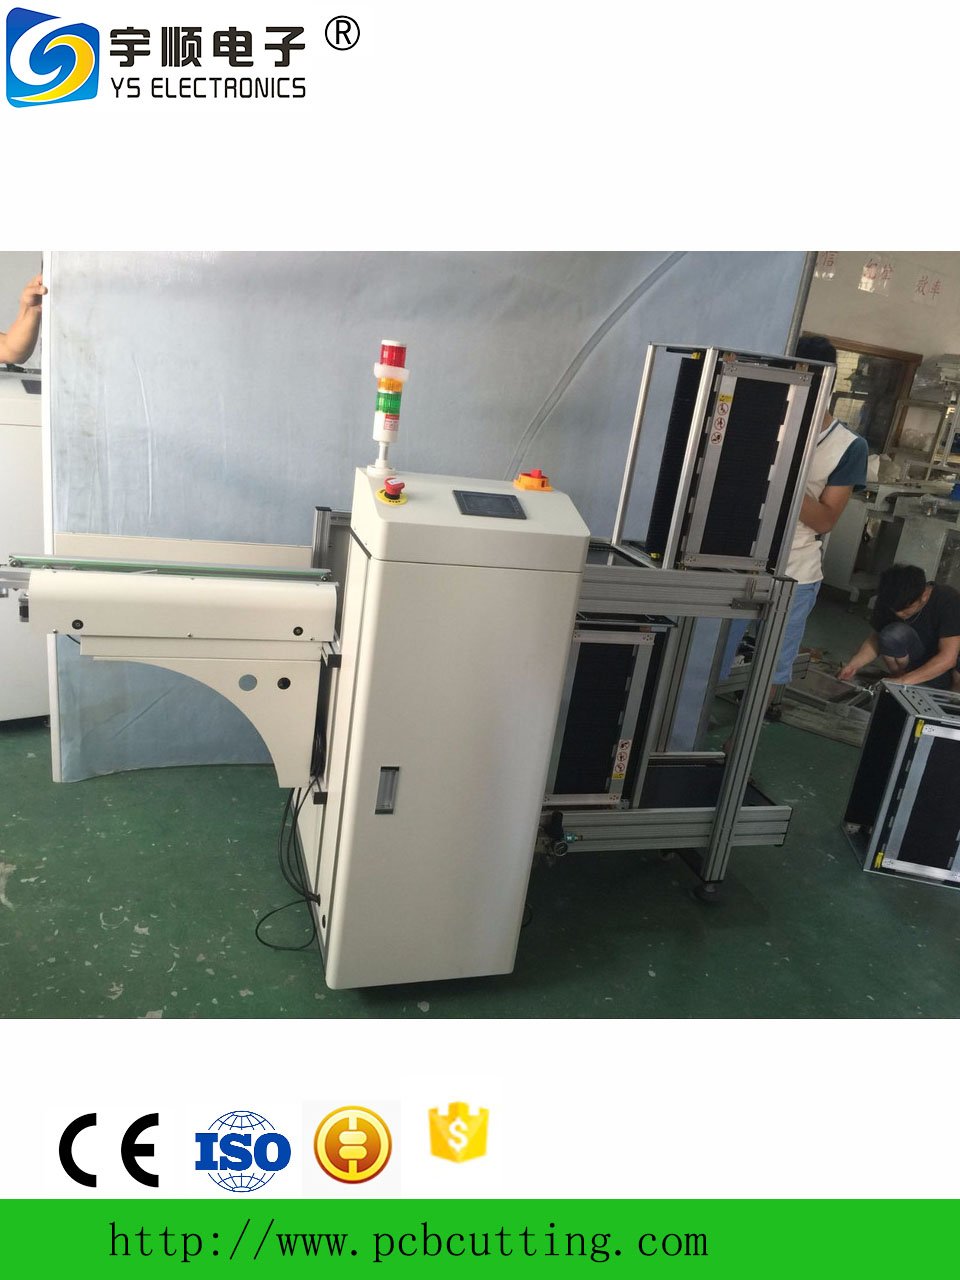 Automatic PCB unloader made in China/SMT line unloader equipment for SMT pick and place machine